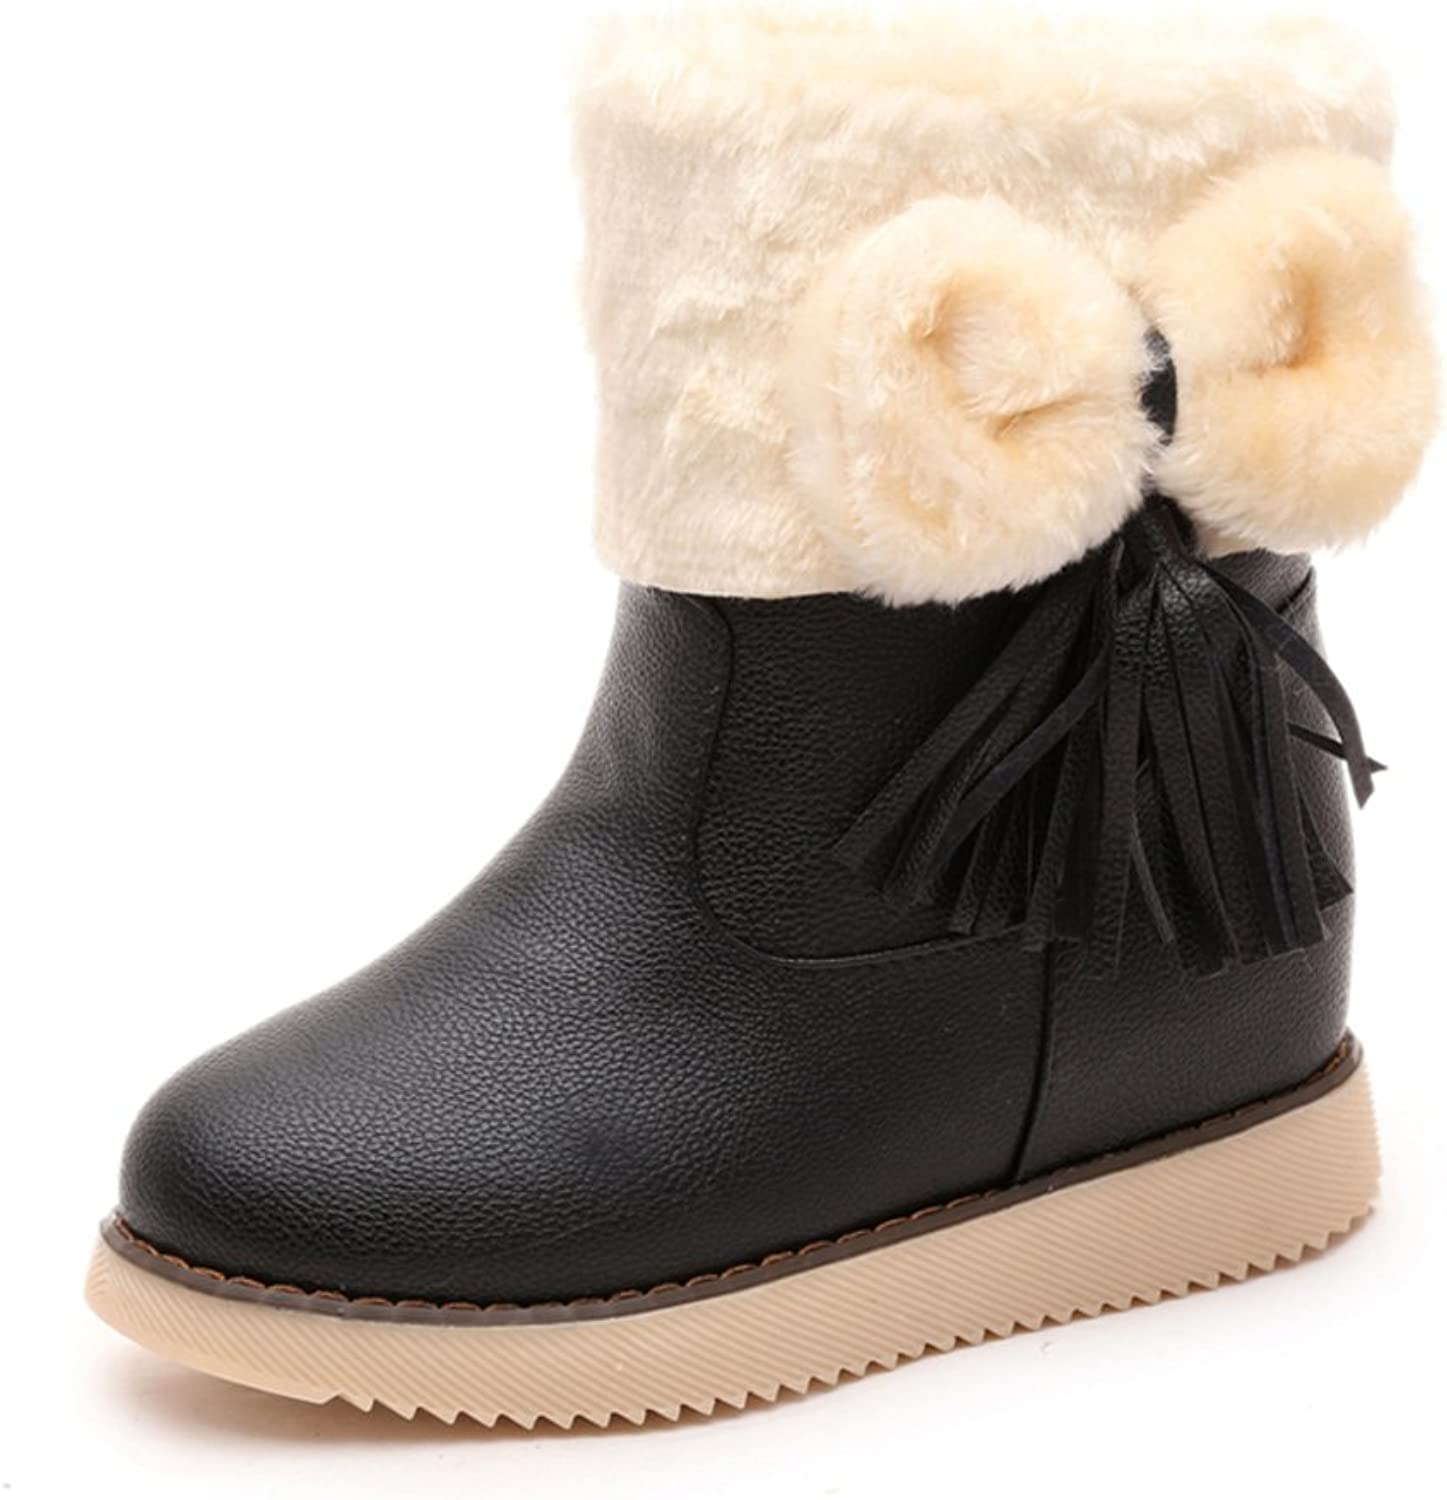 Short boots winter women boots Flat round head snow boots bow shoes high heel strap